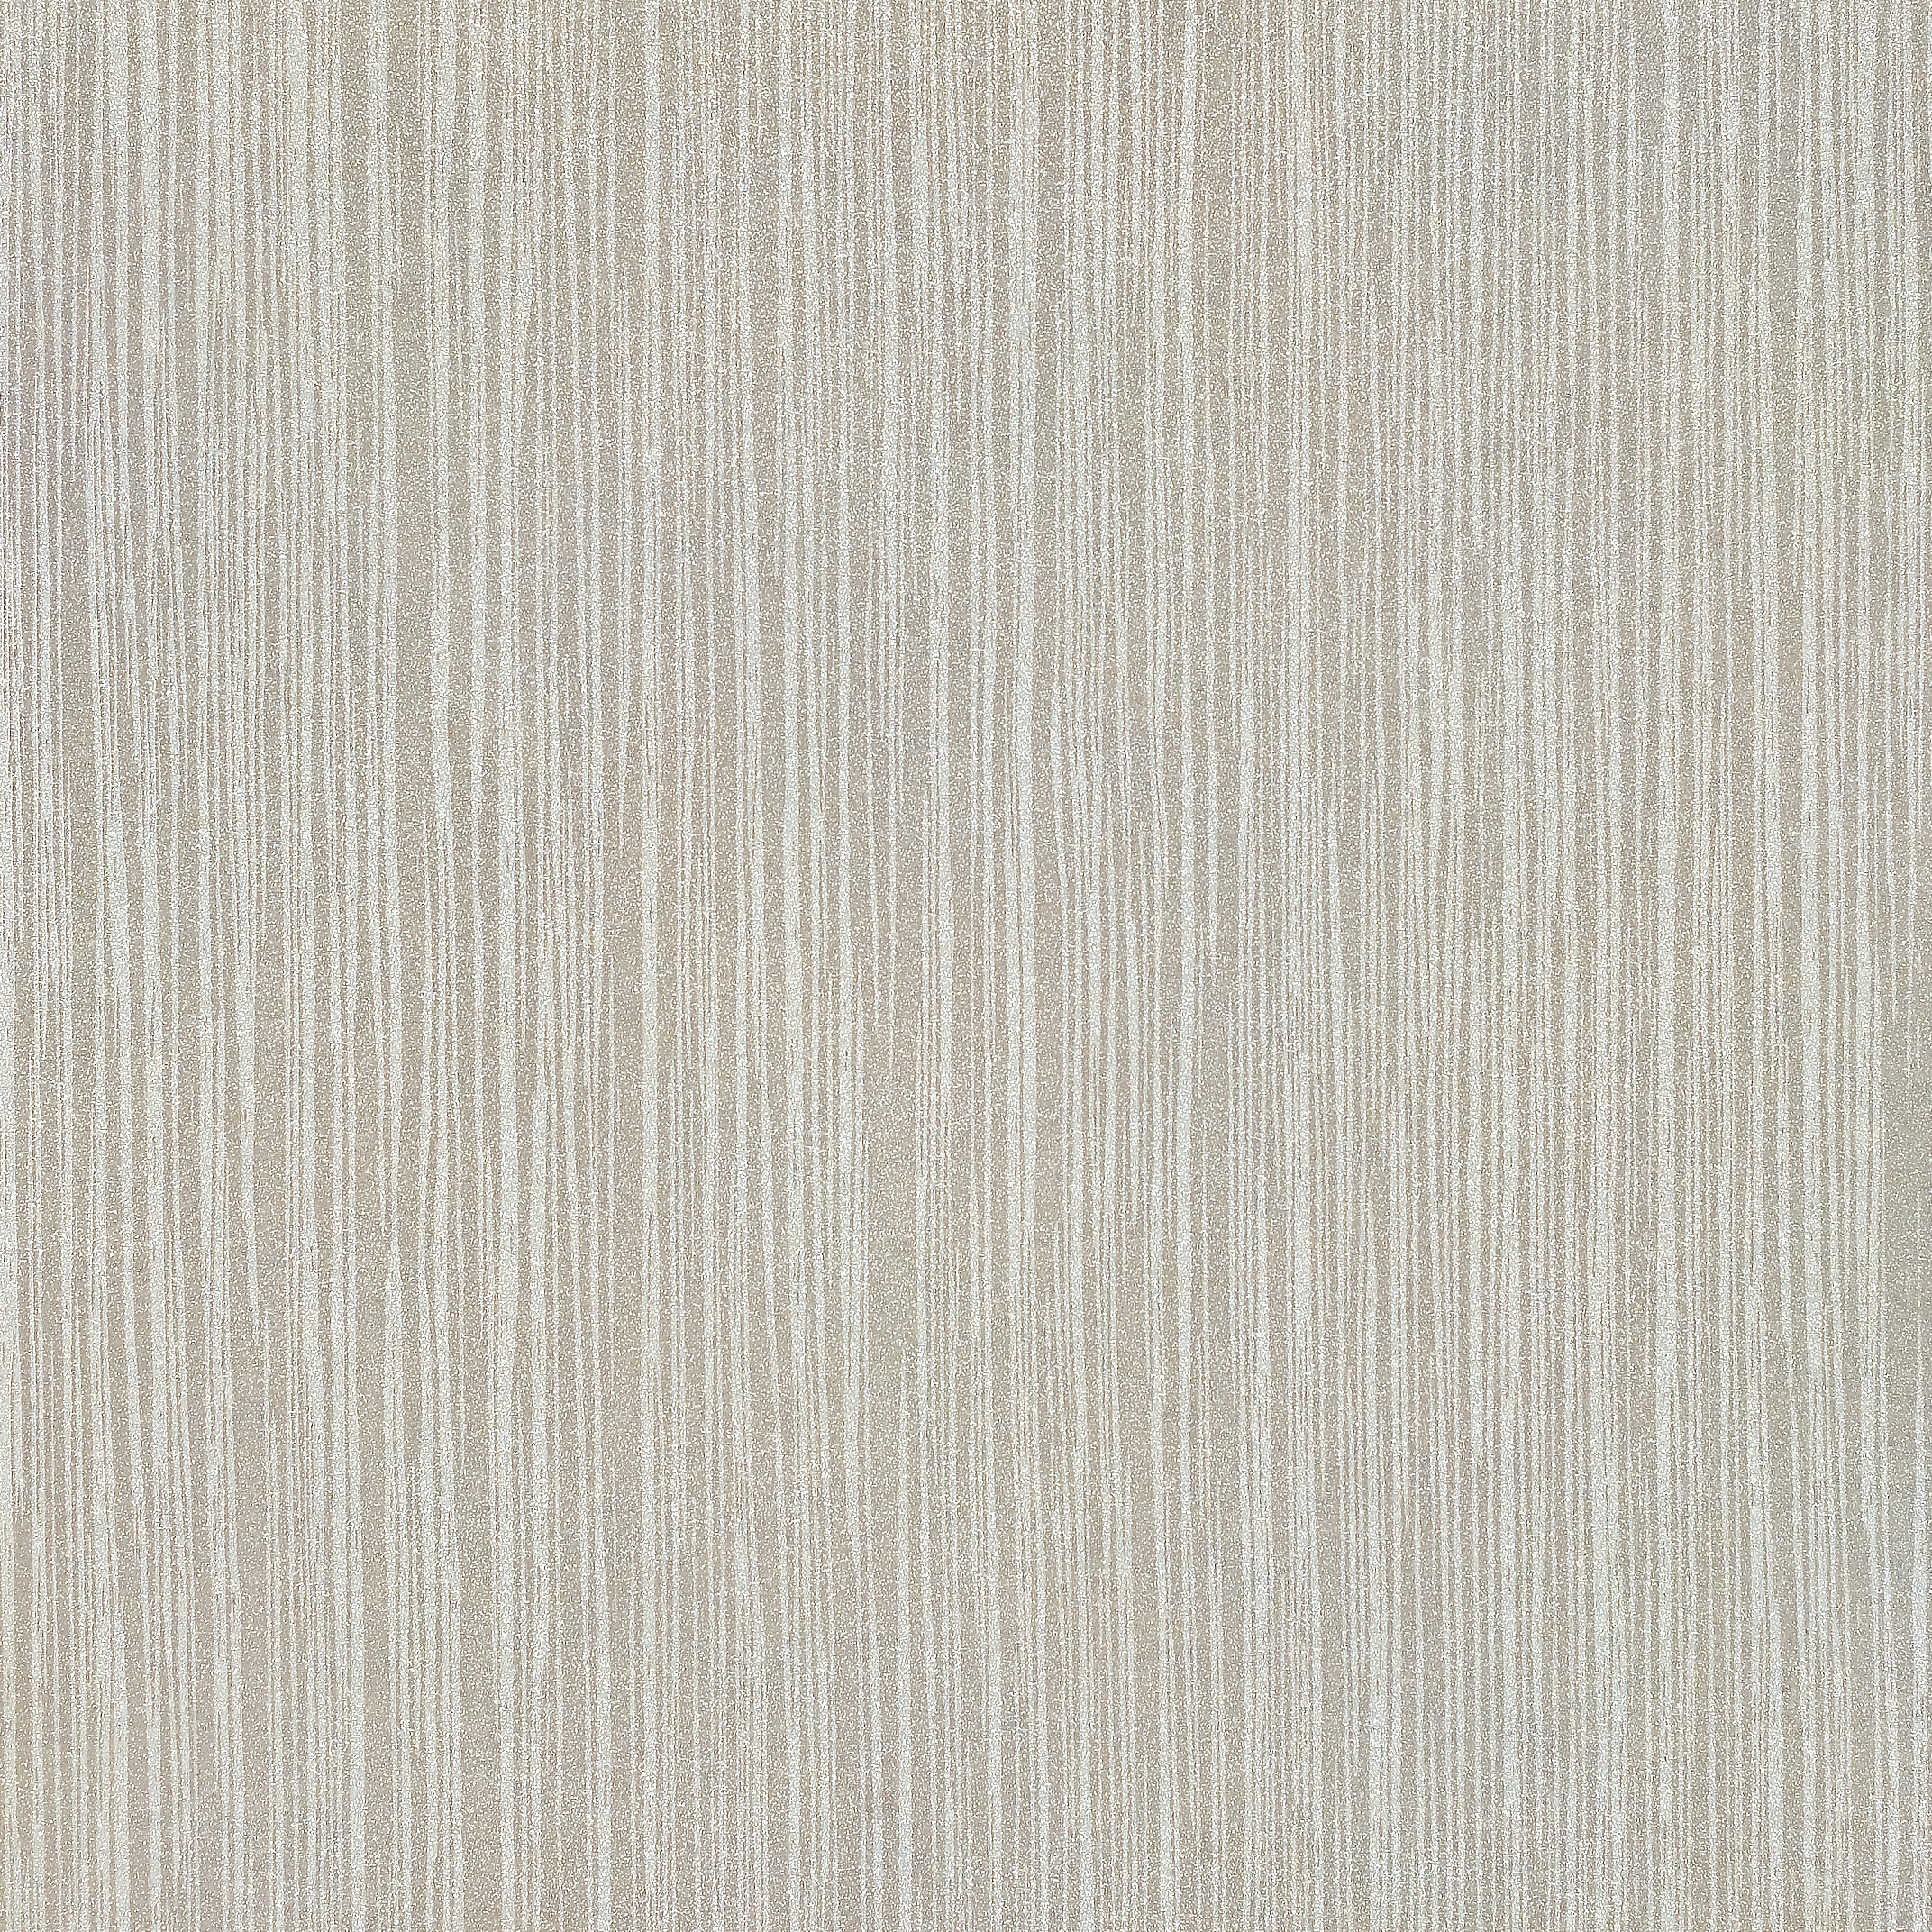 Porcelain Tile | Bentley Series - HSLBW60293 | by Hospitality Finishes